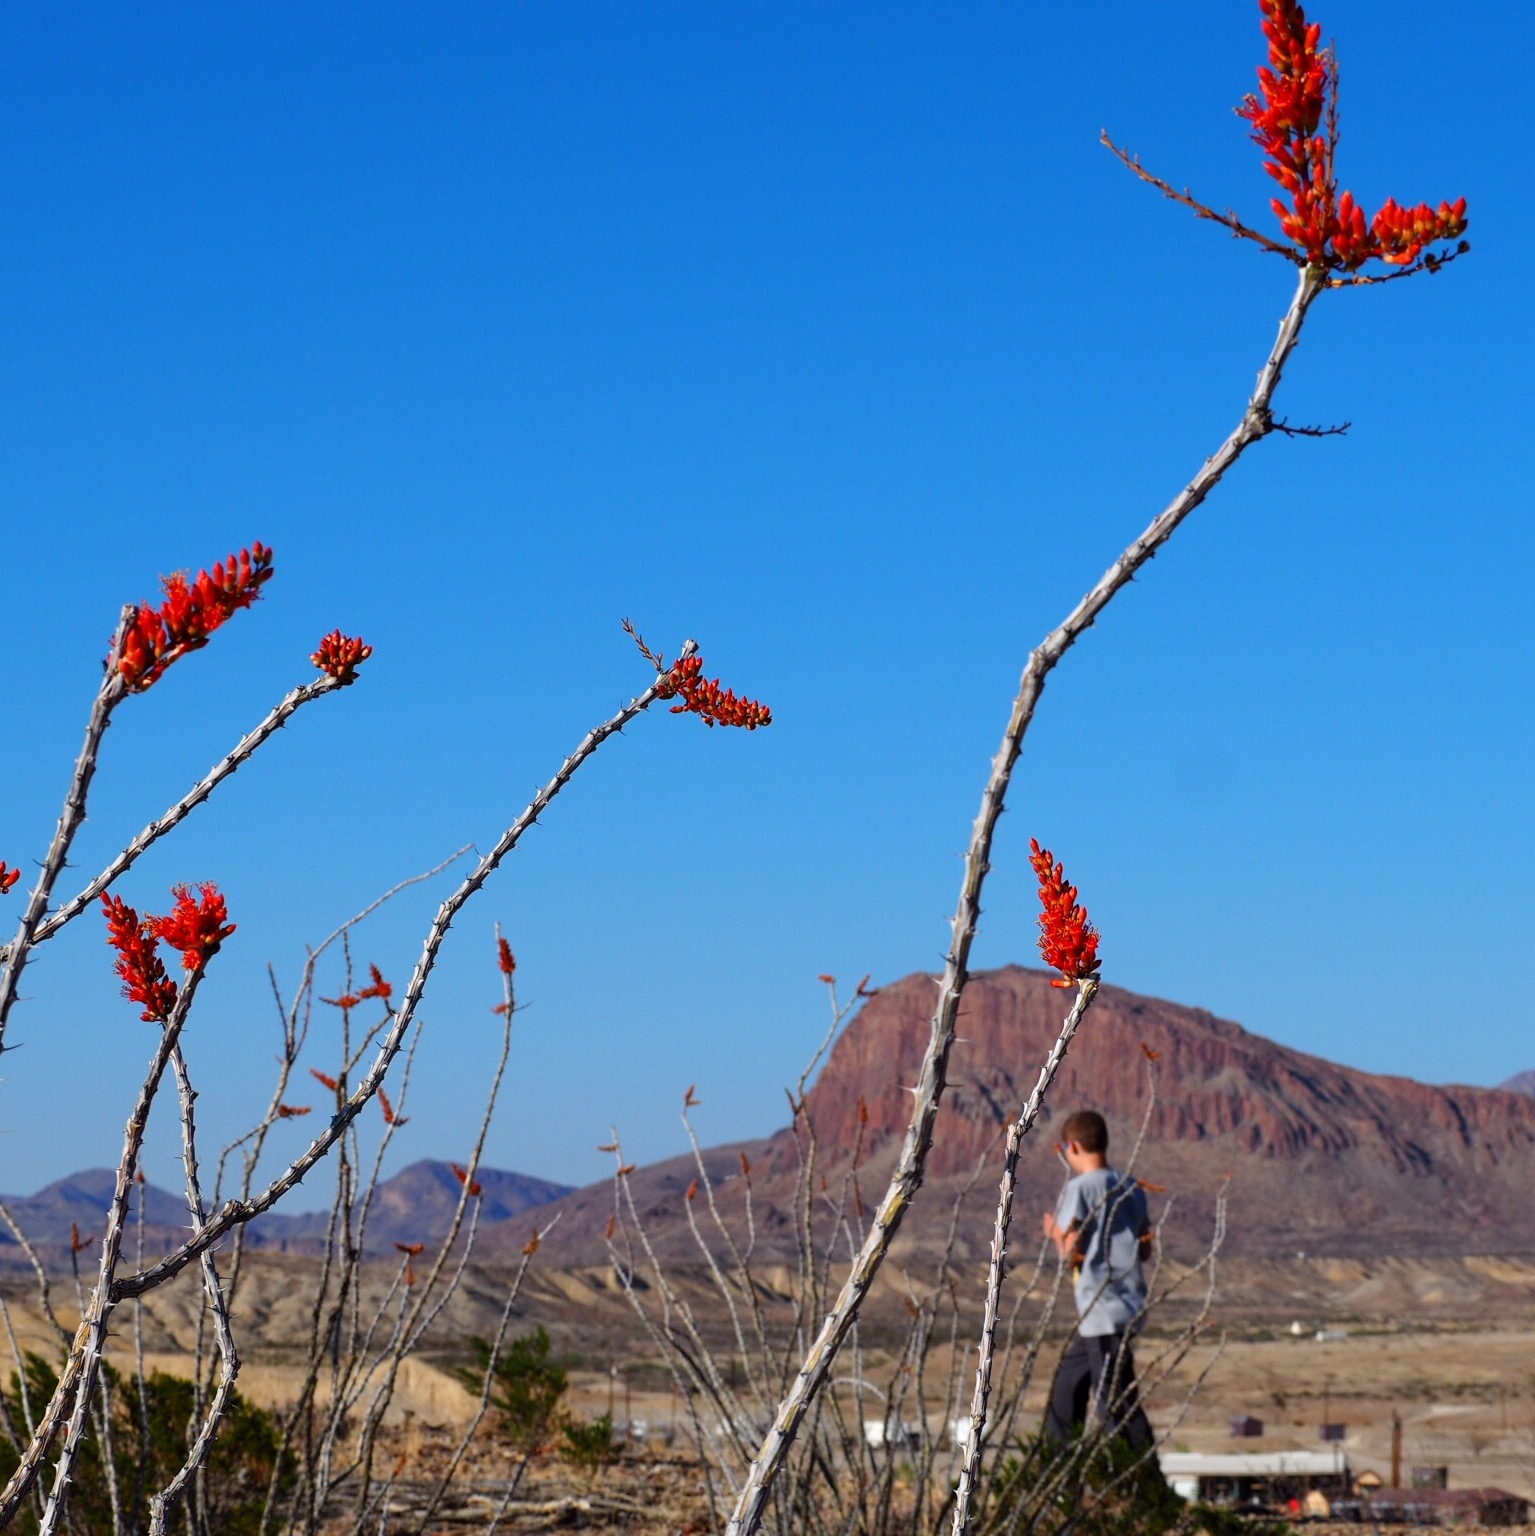 picture taken in big bend national park